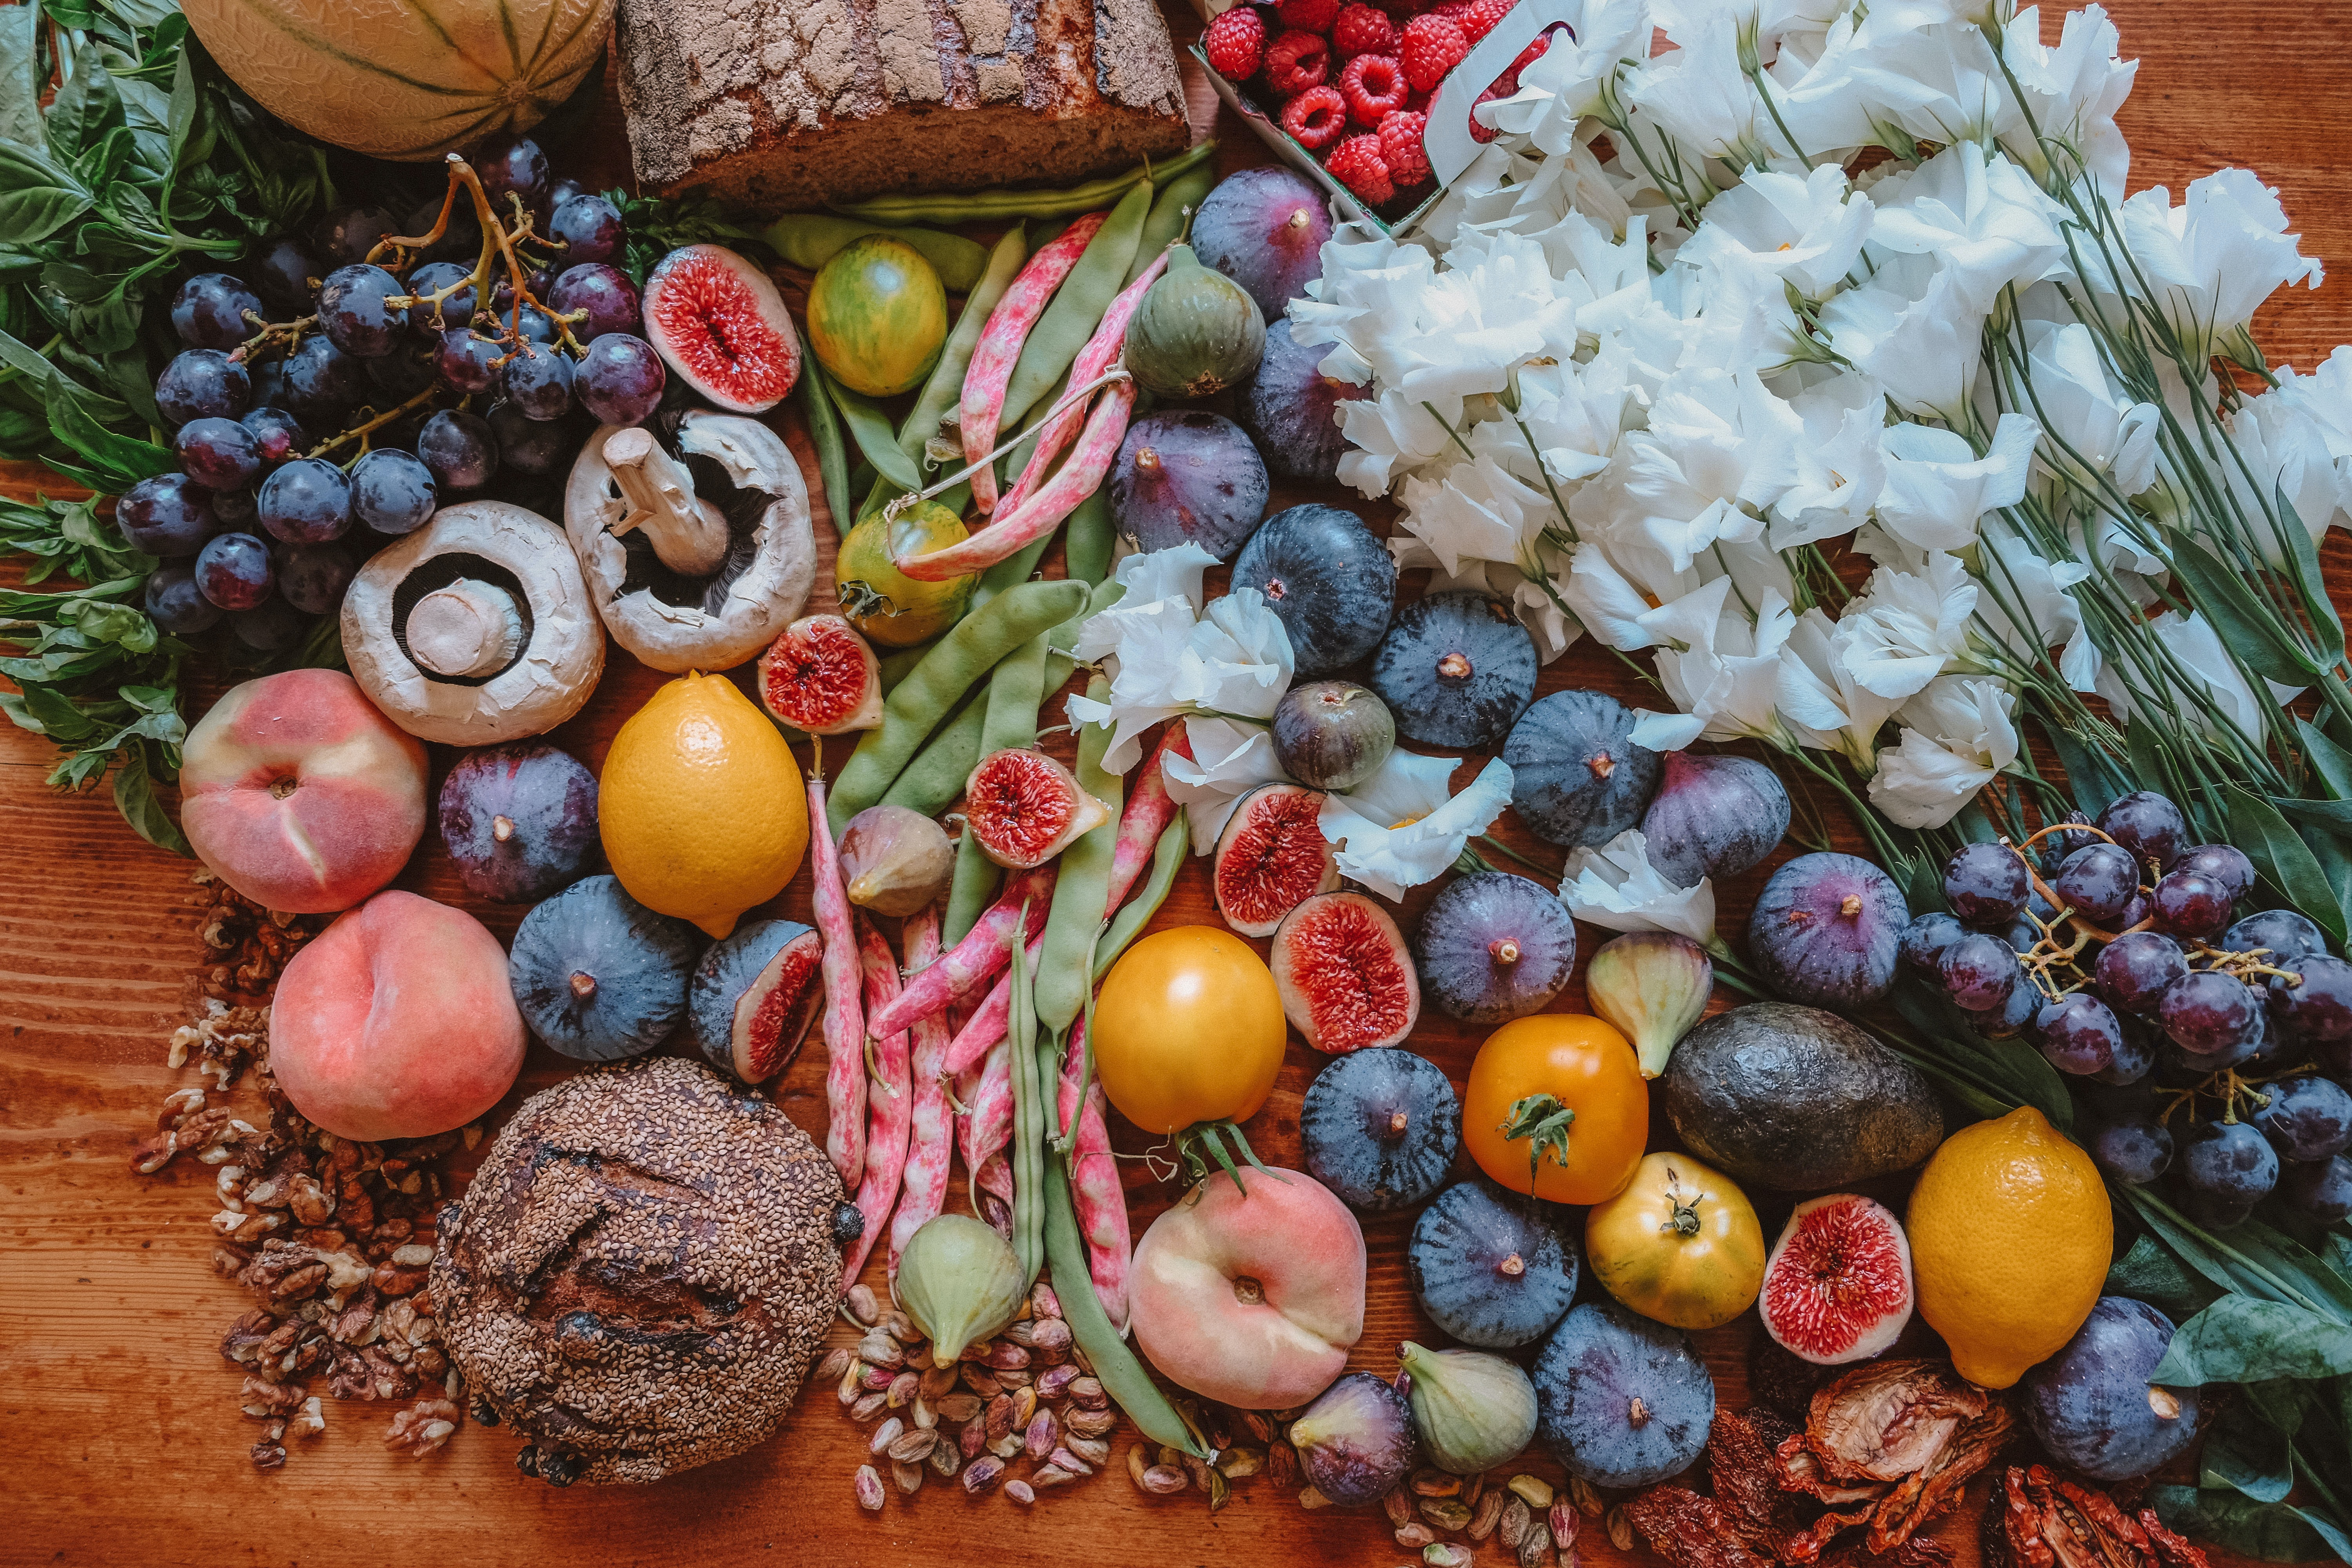 flatlay-photography-of-fruits-1334131